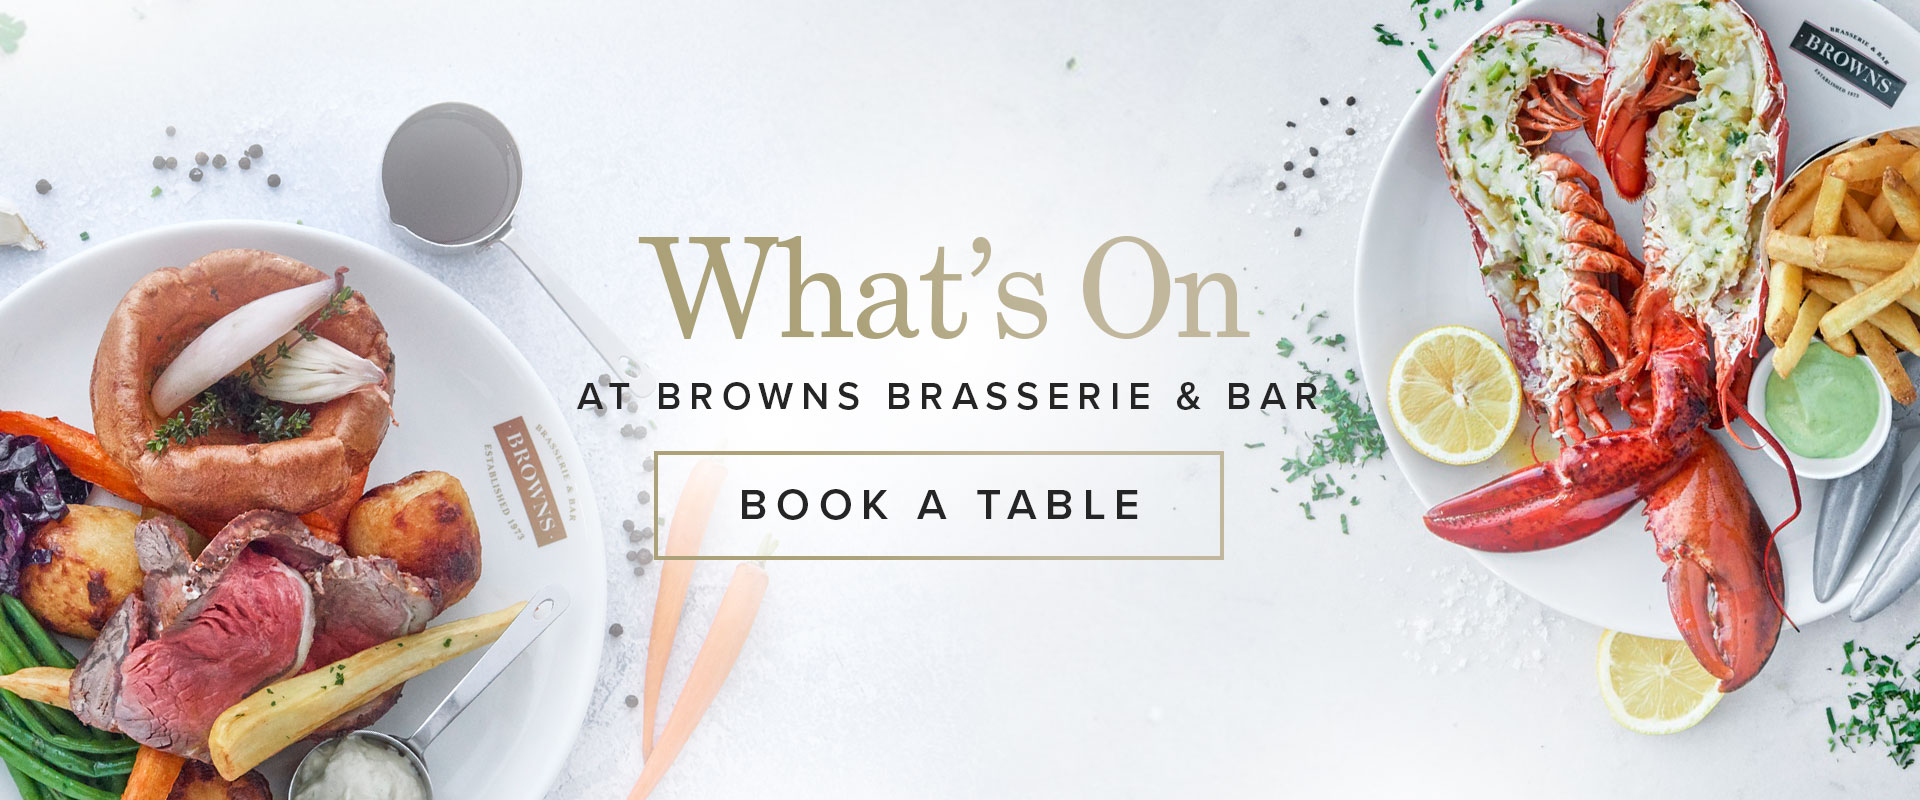 What's on at Browns Windsor